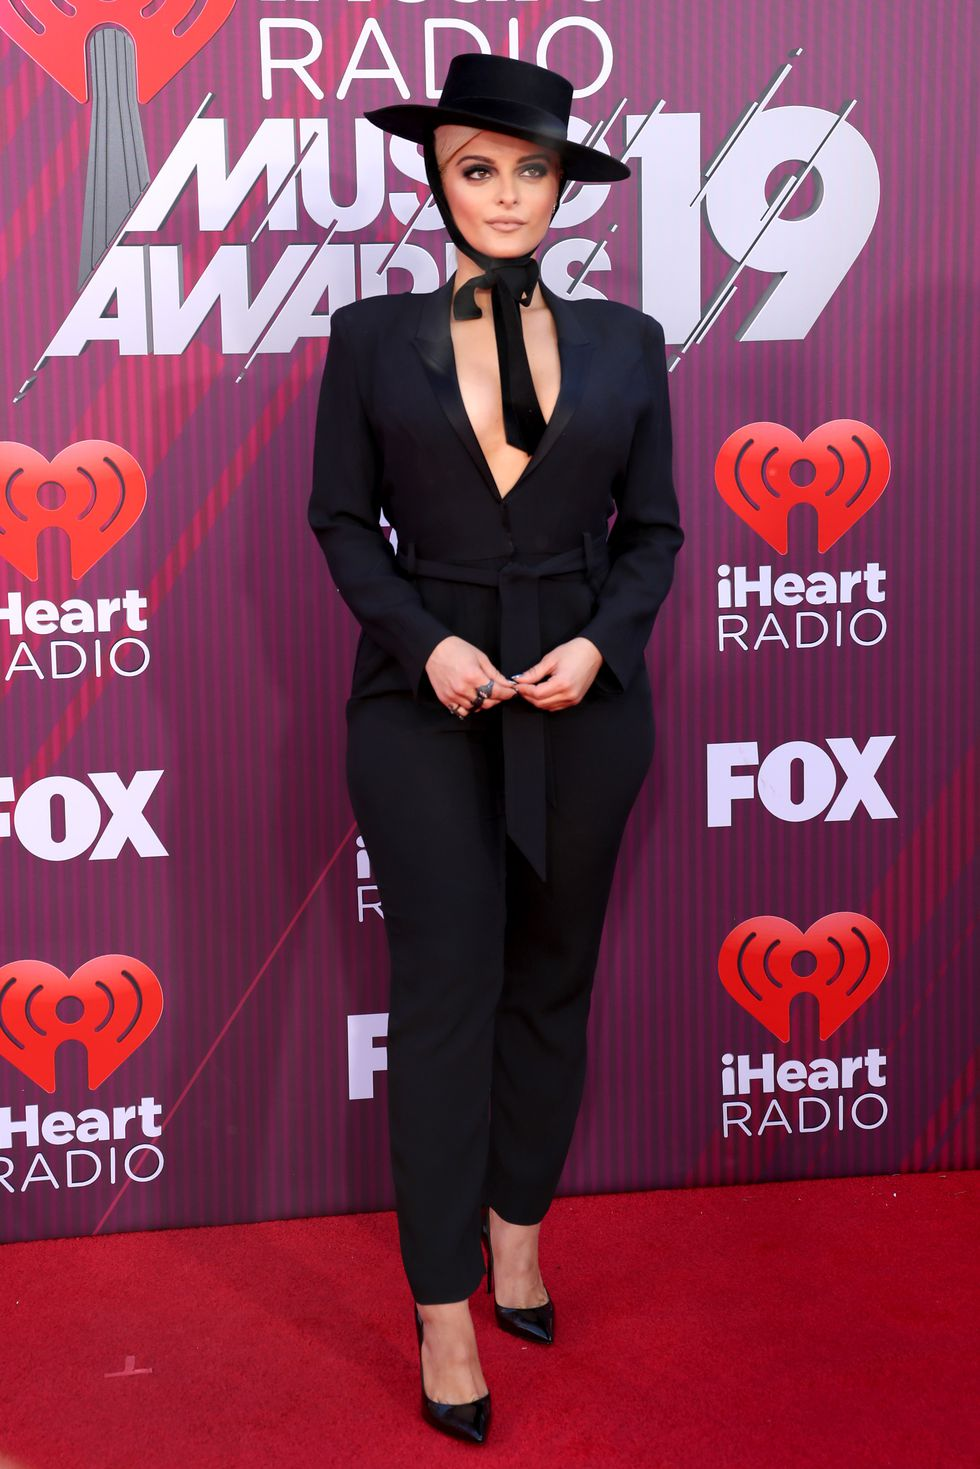 See all the red carpet looks from the 2019 iHeartRadio Awards